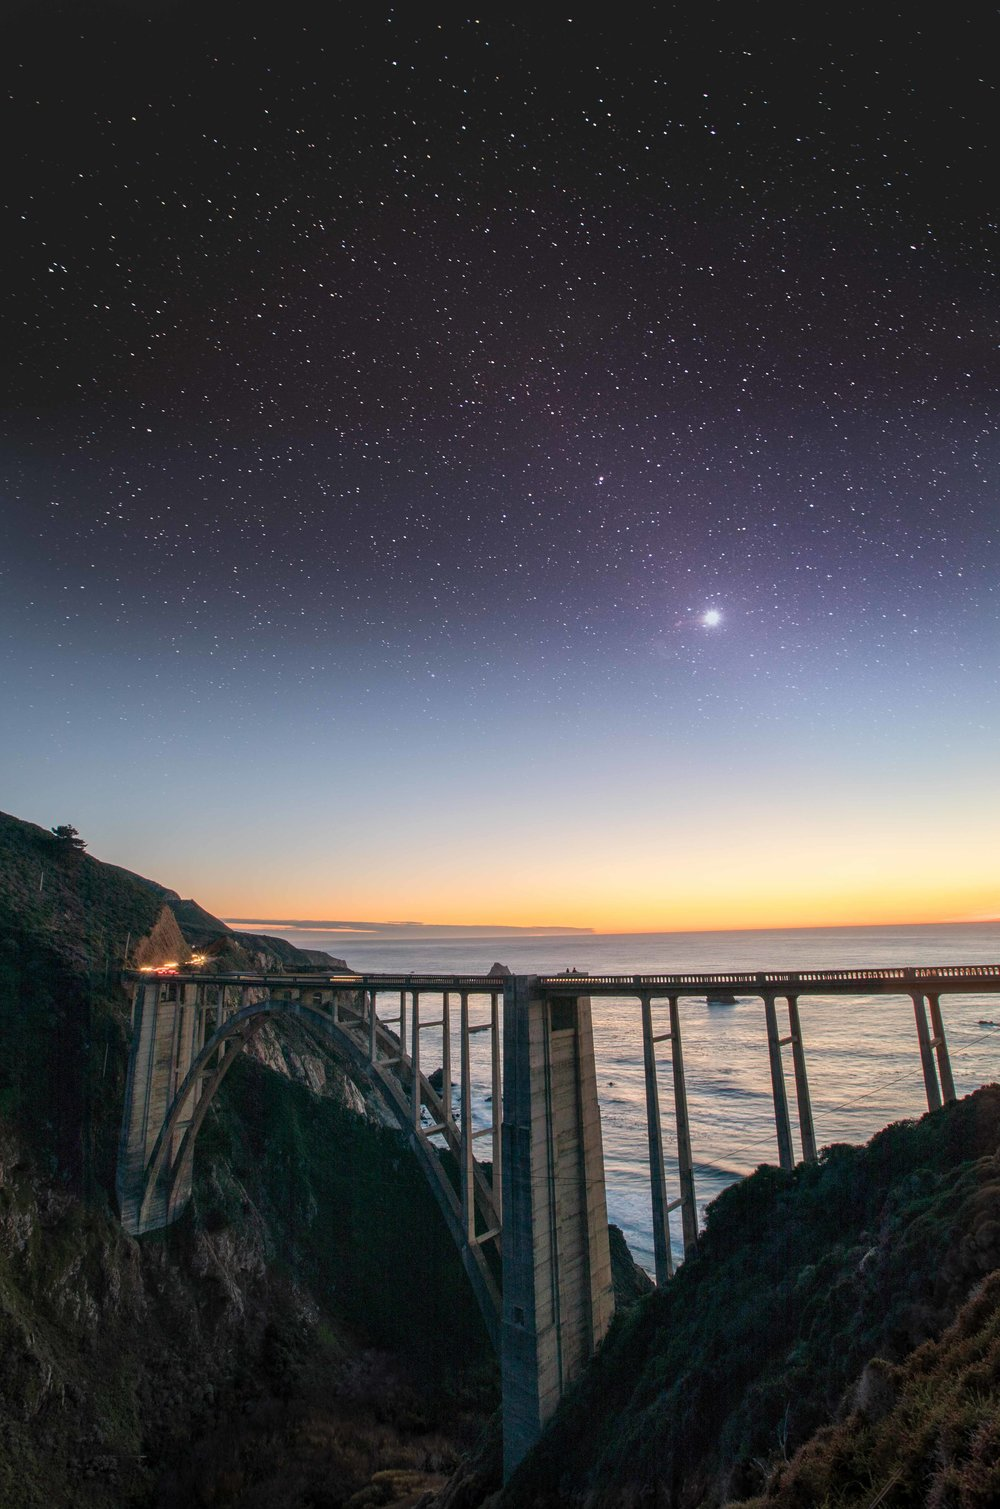 Photo of the Bixby Bridge, just south of Monterey. I took this shot twice, once before sunset and once after it got dark. I then combined the two images.